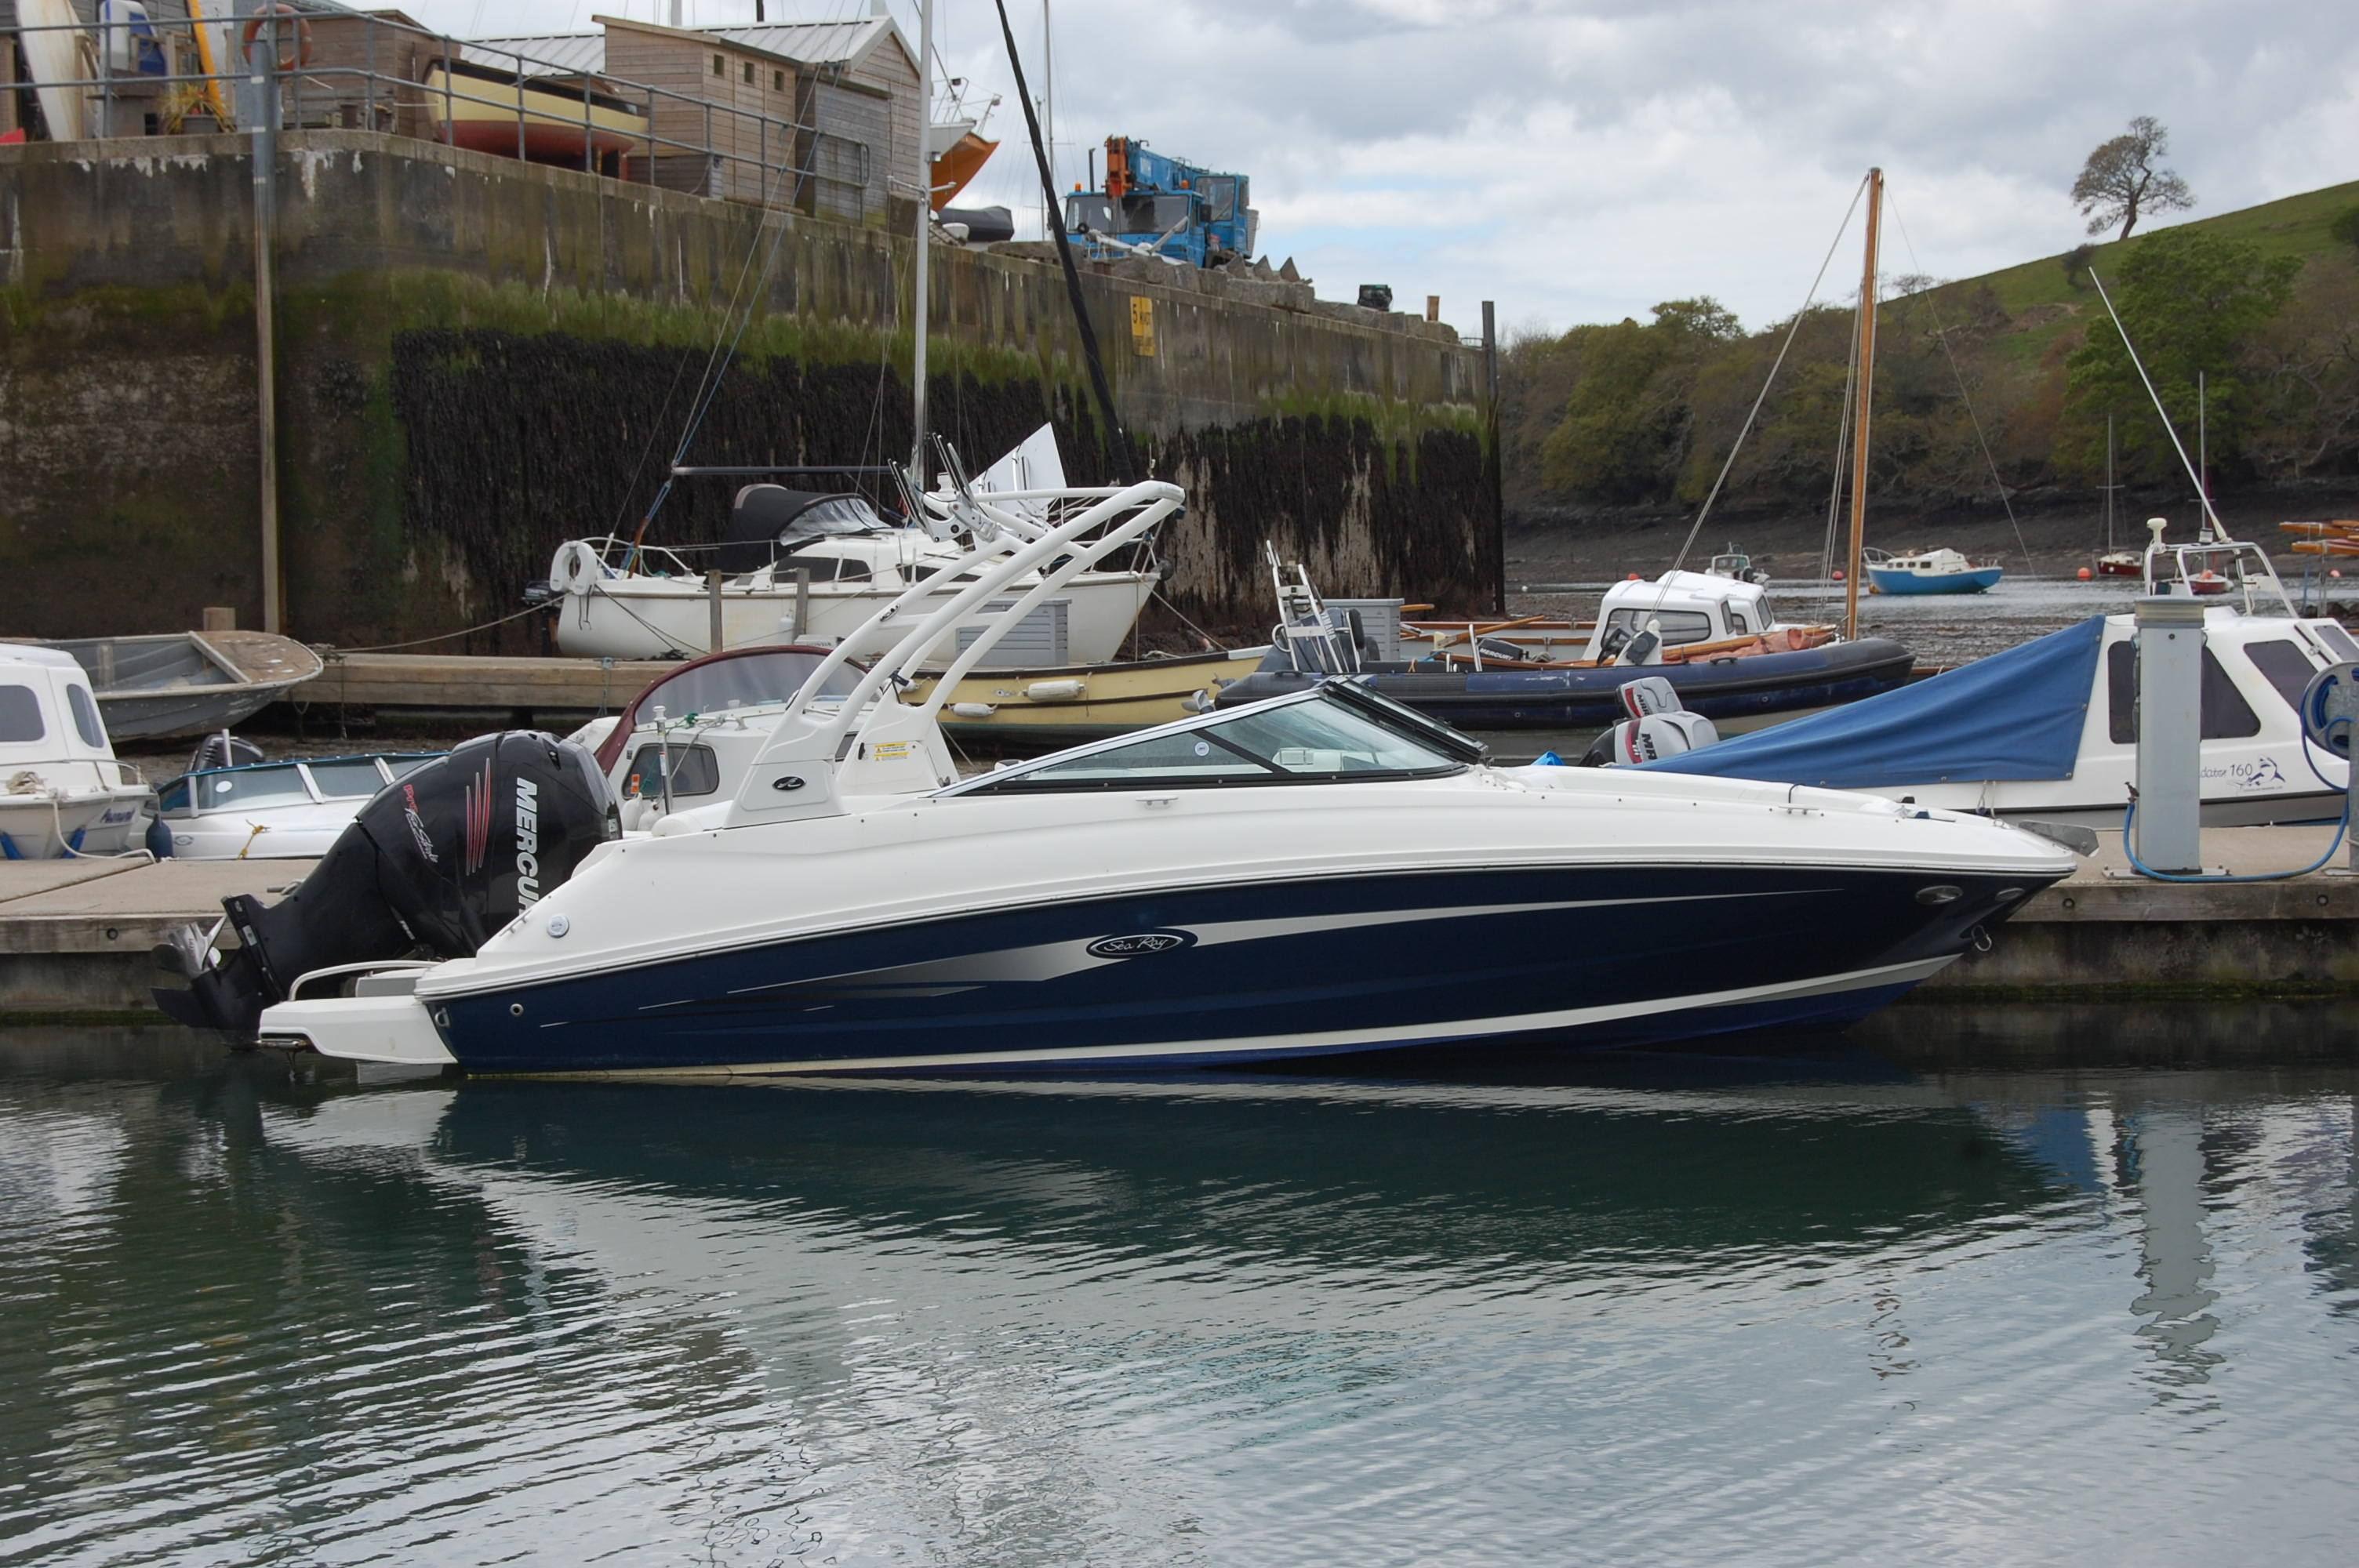 Sea Ray 220 Sundeck Outboard Wakeboard Tower Sea Ray 220 Sundeck Outboard Wakeboard Tower